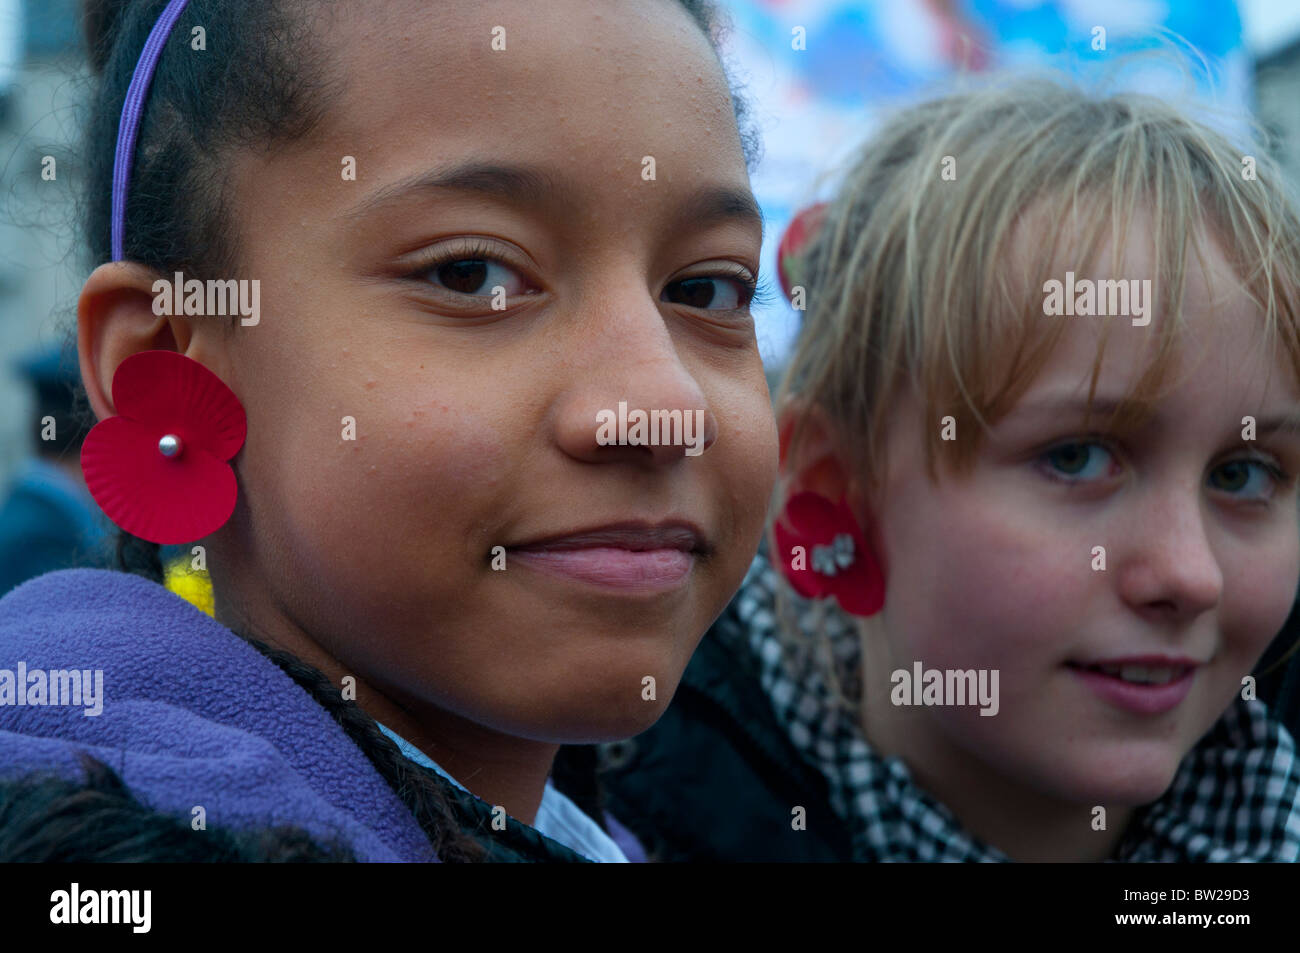 November 11th 2010. Remembrance Day Trafalgar Square. Two young girls wear poppies on their ears - Stock Image